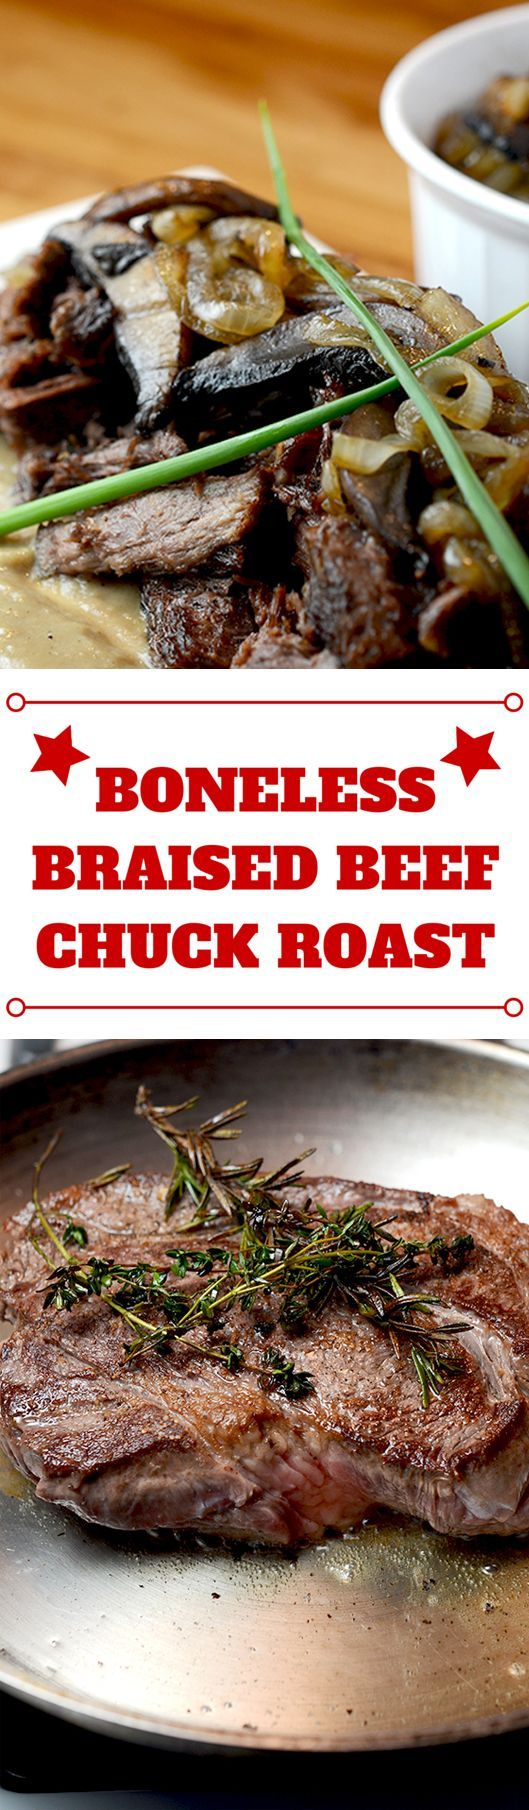 Pan seared boneless beef chuck roast recipe has huge flavors and is ready to be braised within minutes! Paleo, gluten free and low carb. | Braised boneless beef chuck roast recipe takes minutes to prepare and will fill your house with the most incredible aromas! Paleo, low carb and gluten free